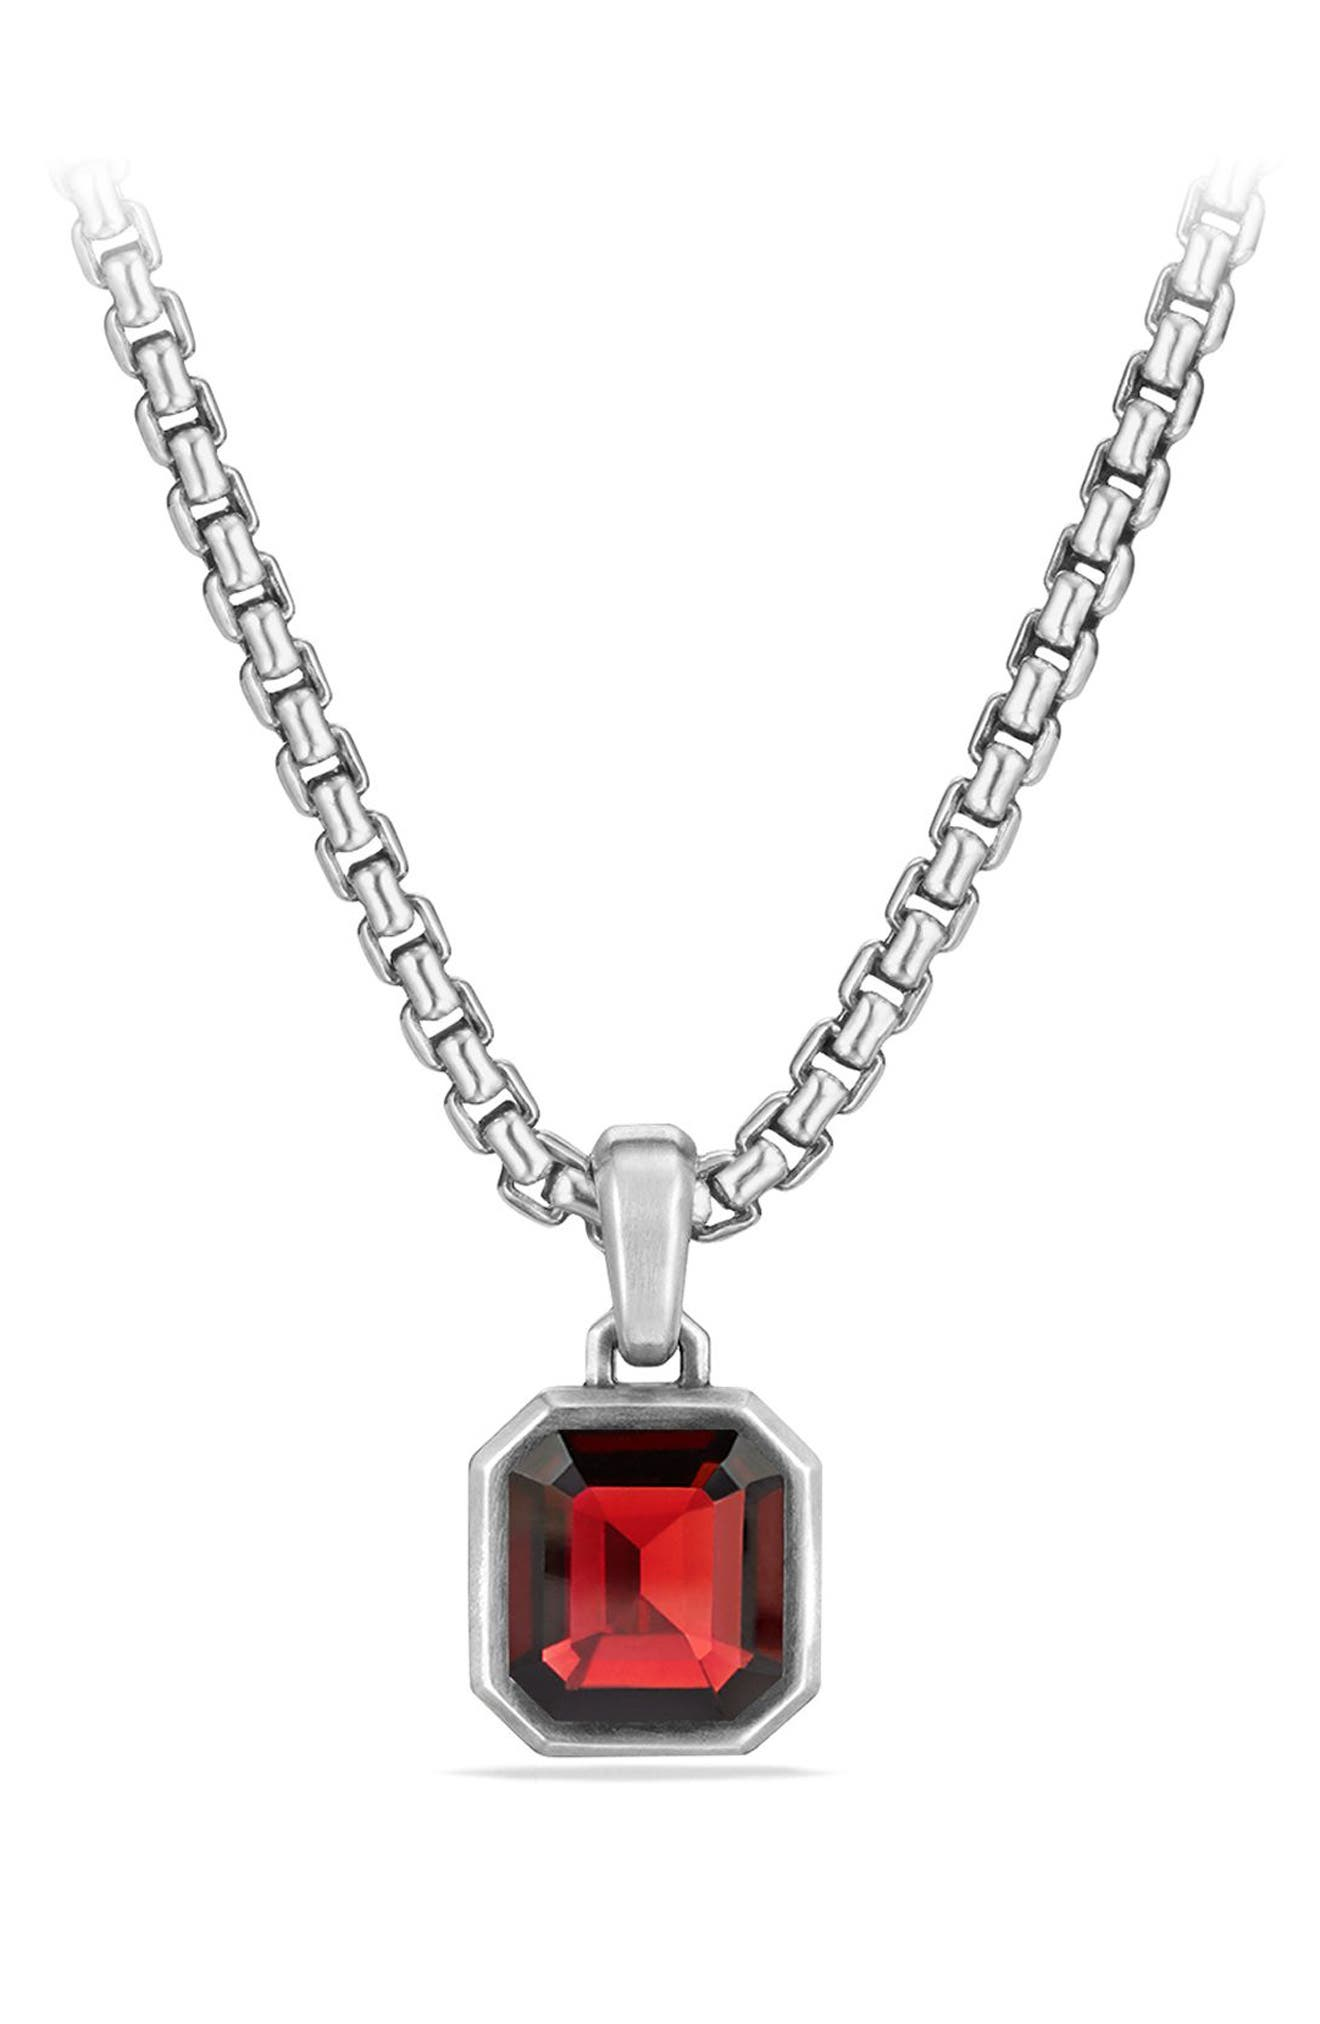 DAVID YURMAN Emerald Cut Semiprecious Stone Amulet